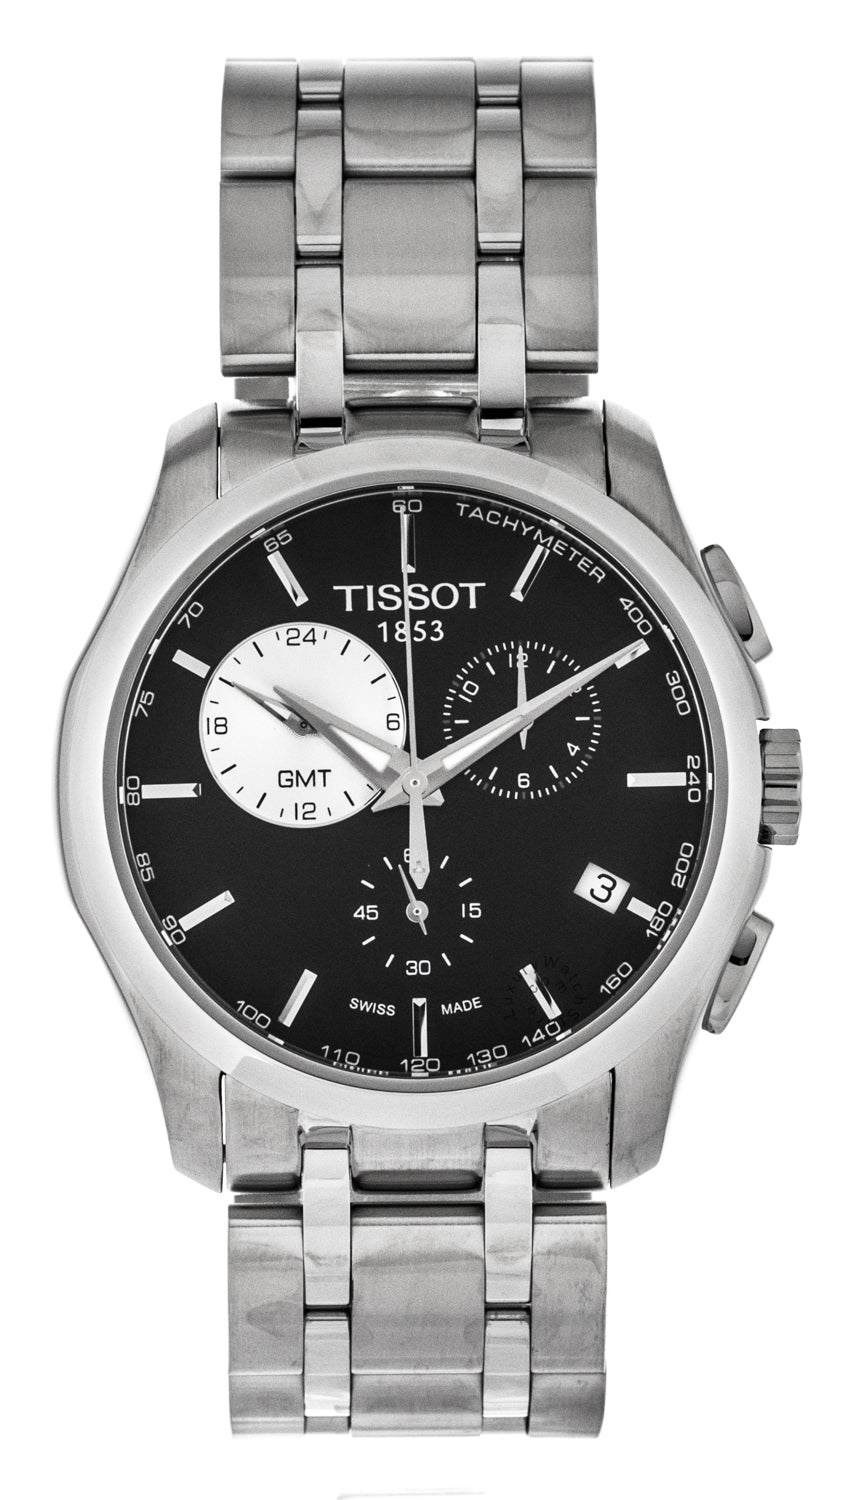 Tissot T-Trend Couturier GMT Chronograph SS Men's Watch T0354391105100